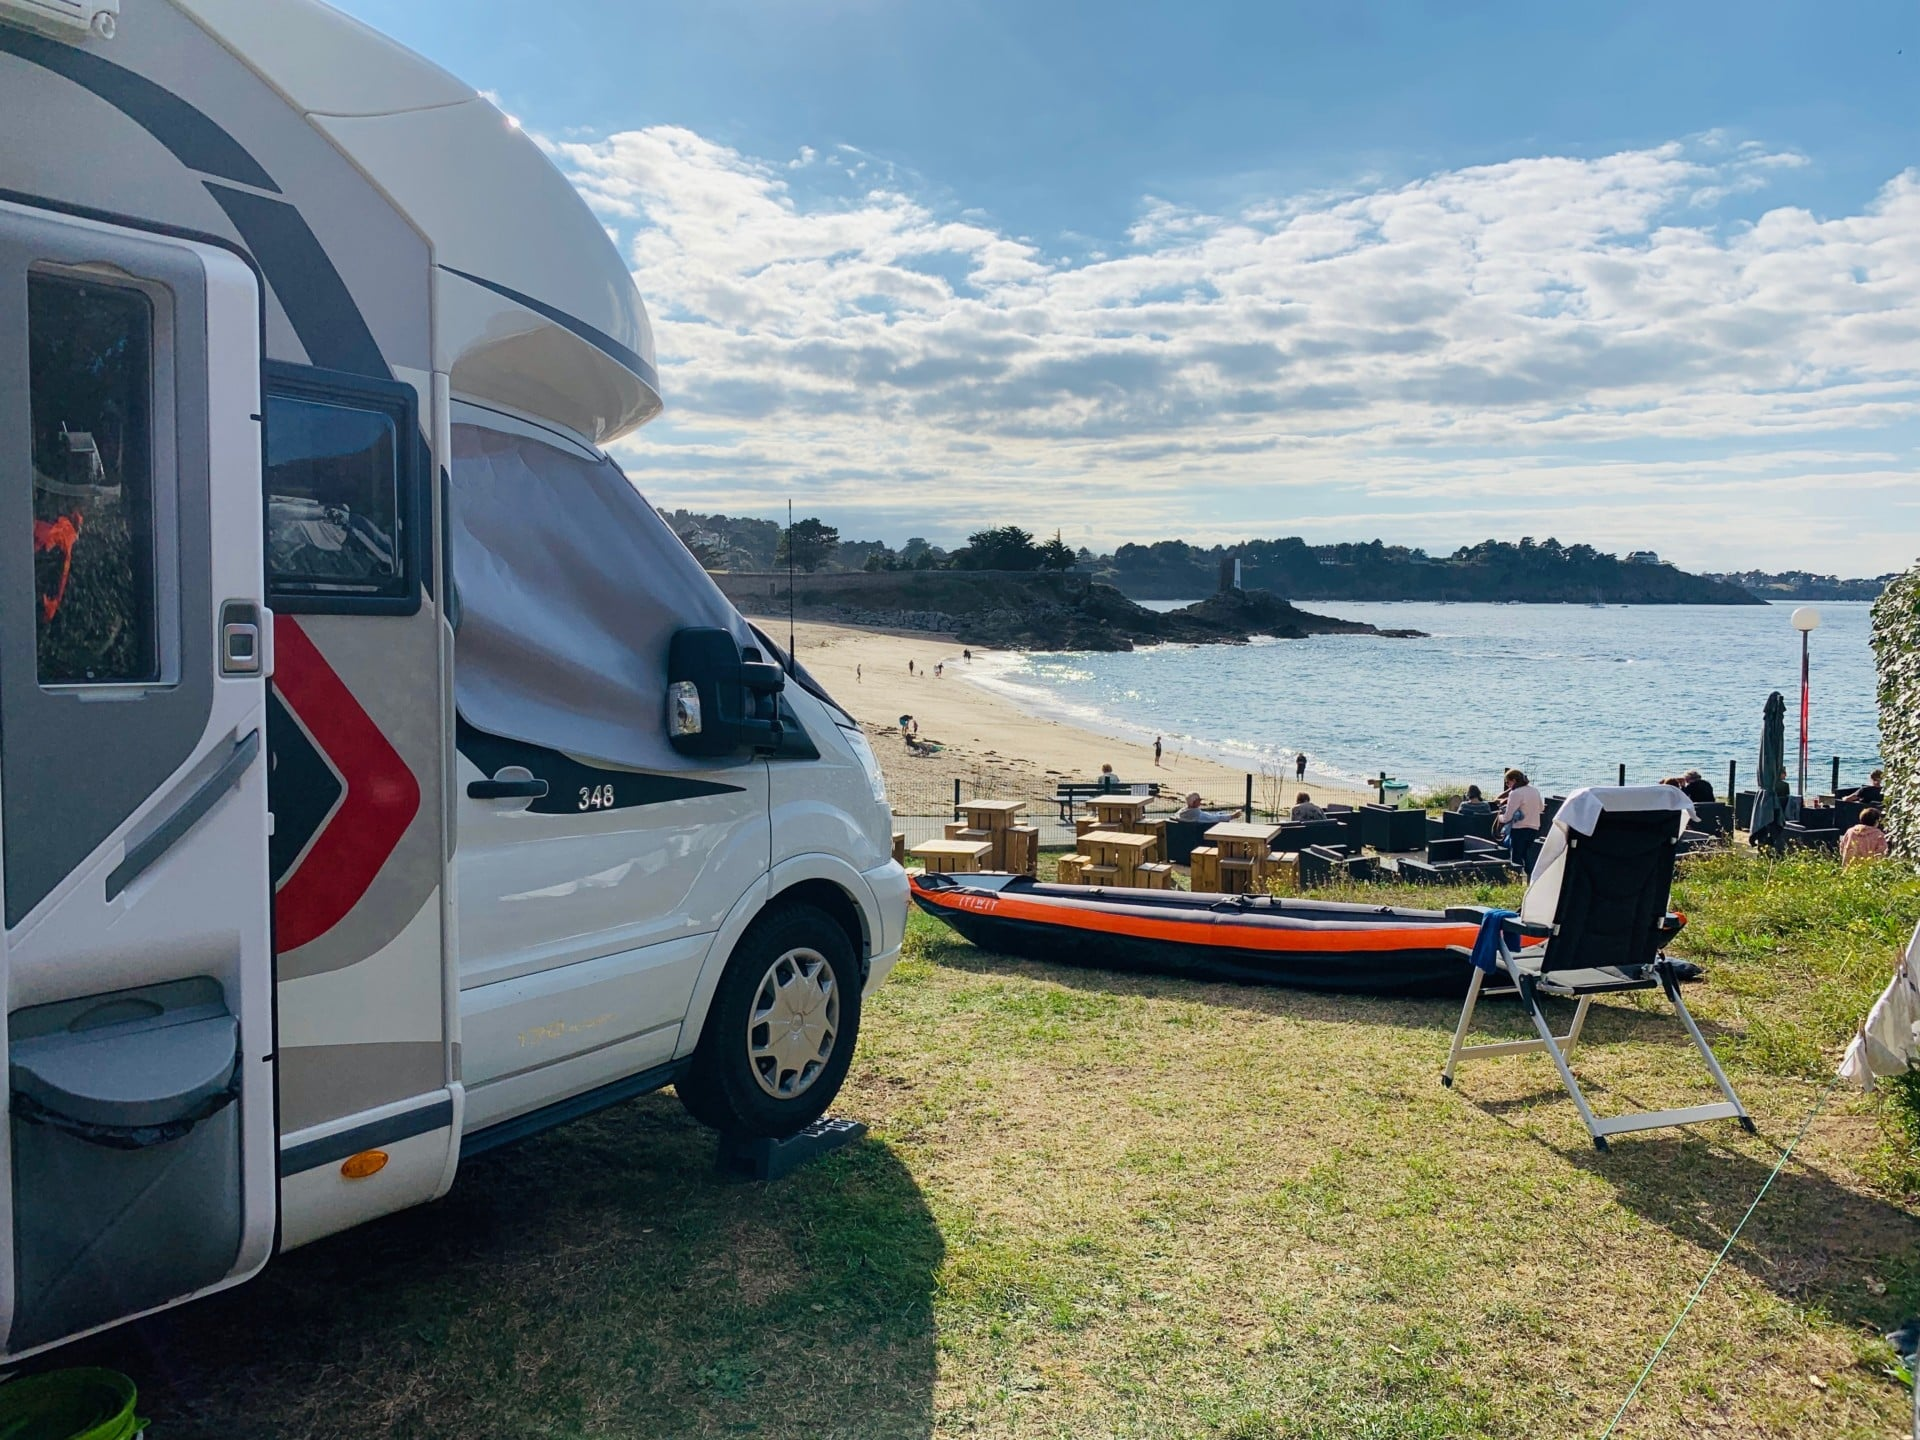 camping-car-vue-mer-plage-soleil-emplacement-pitch